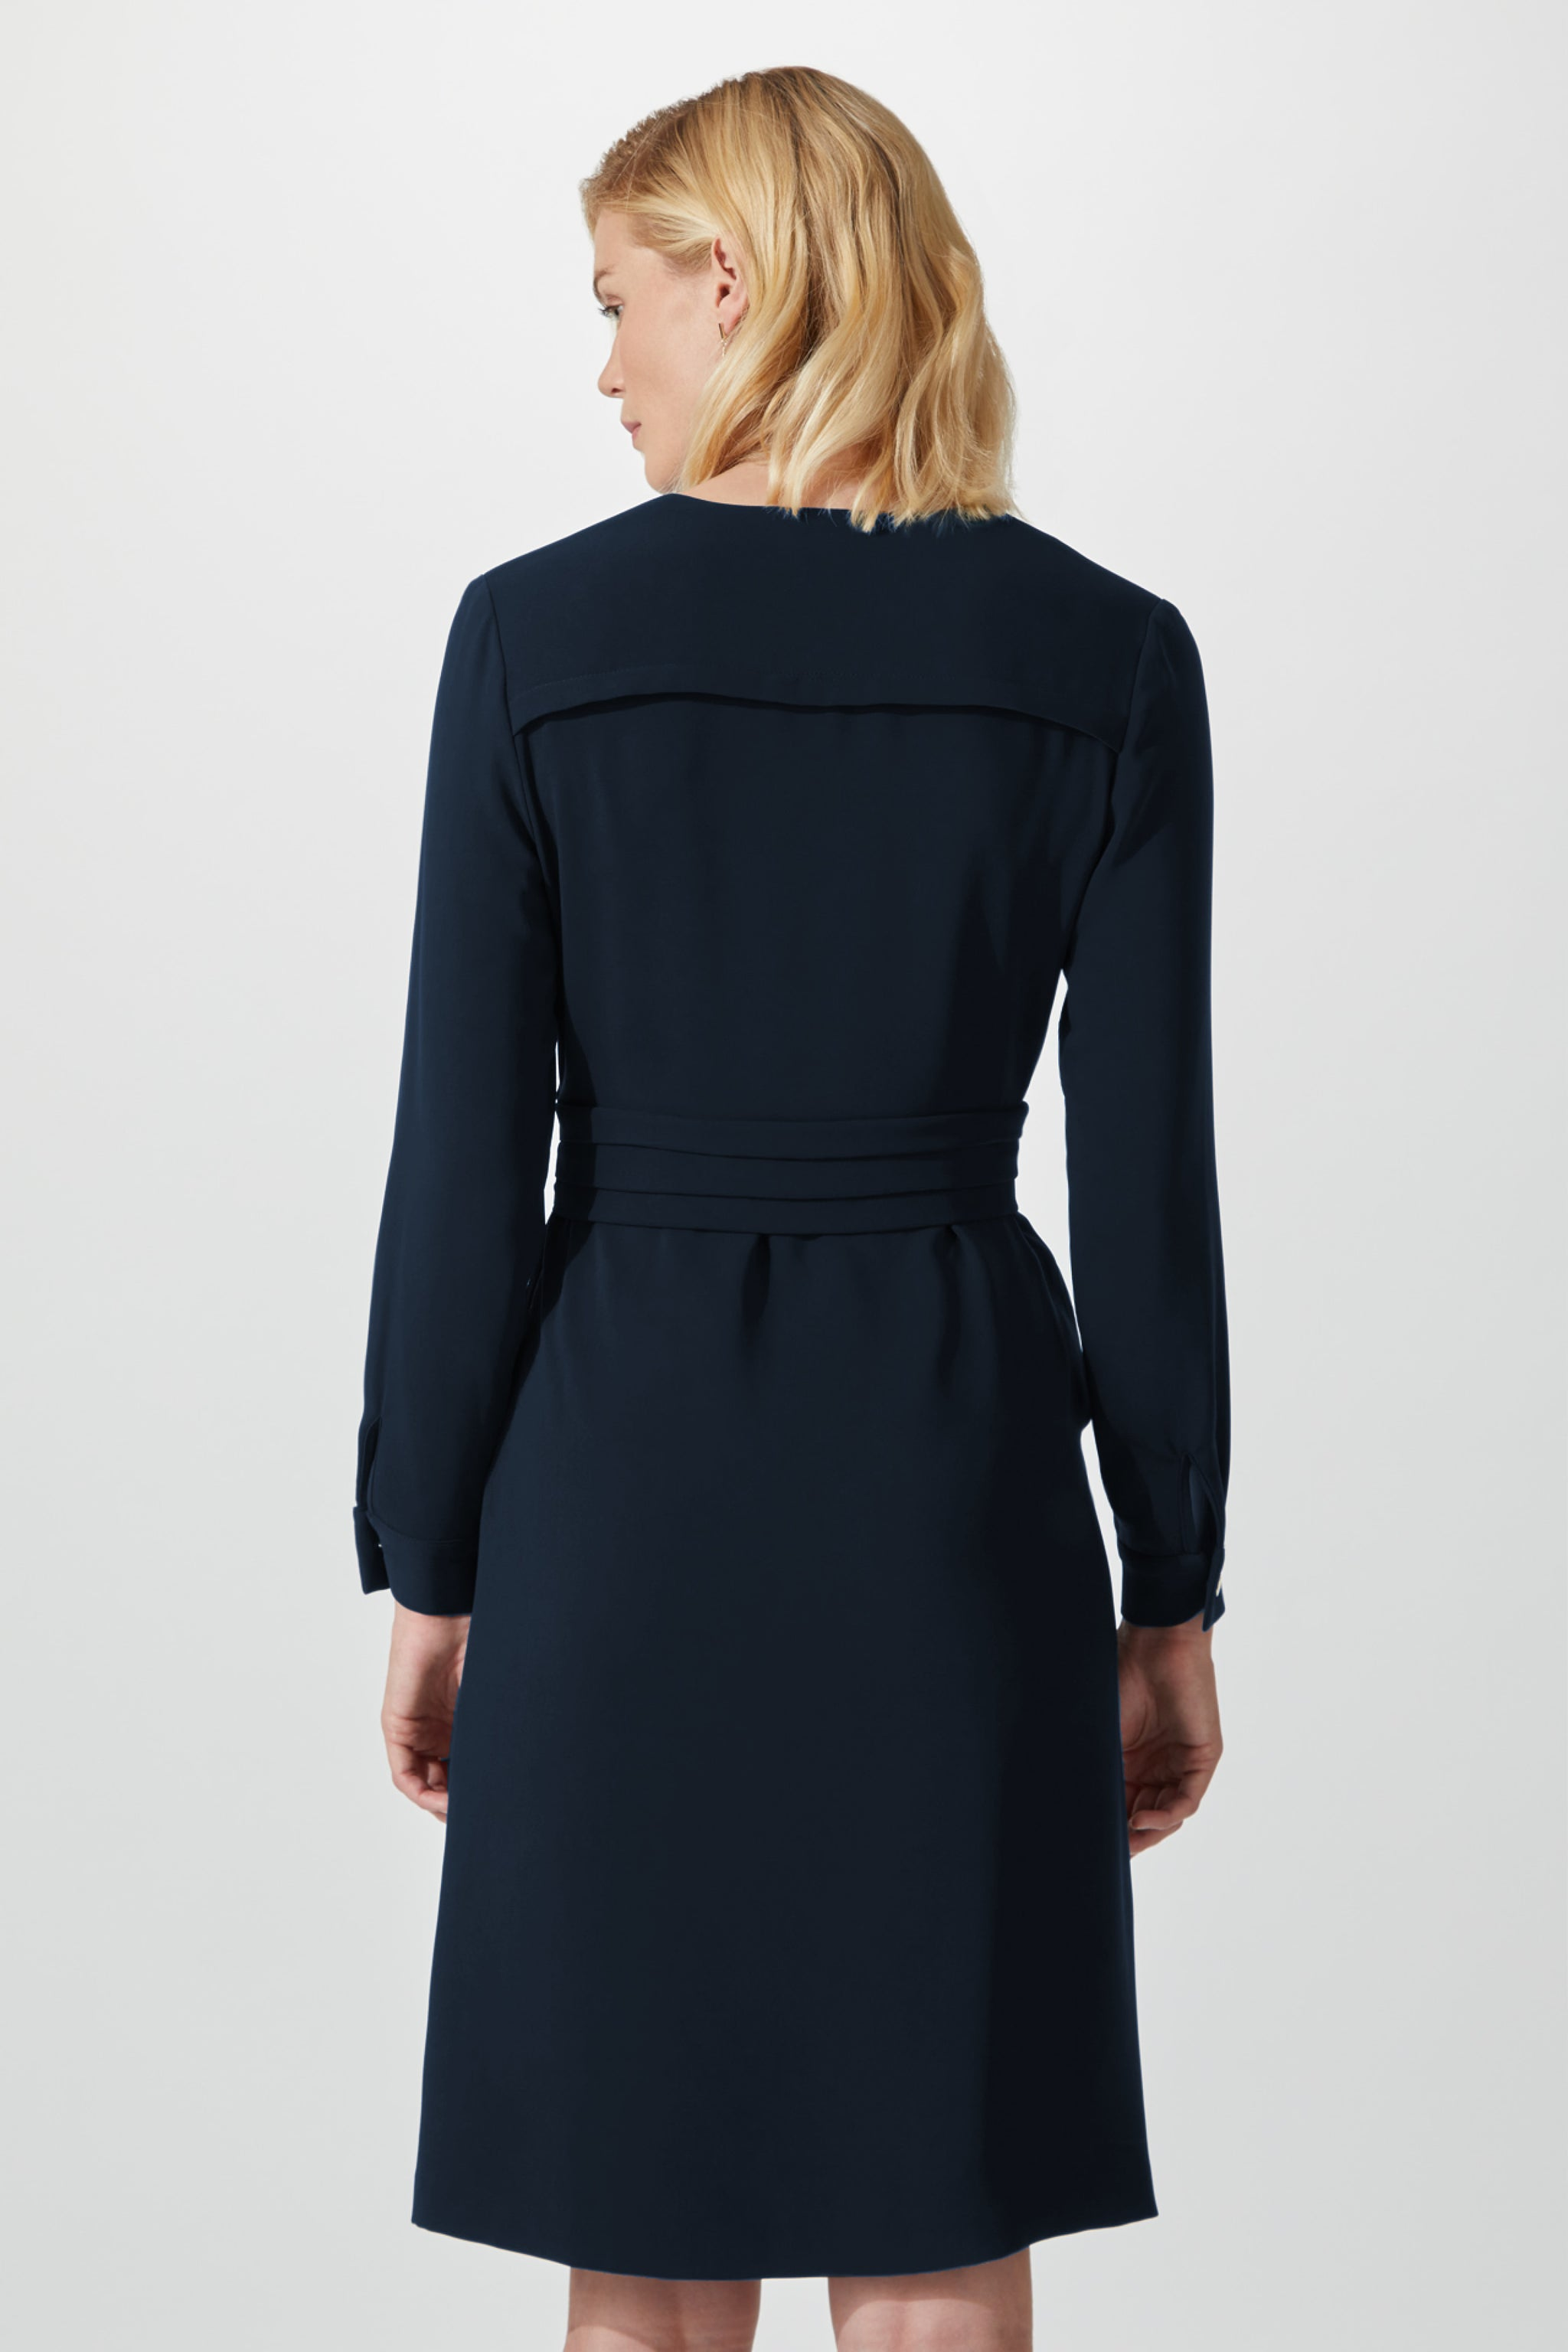 Rossetti Navy Dress